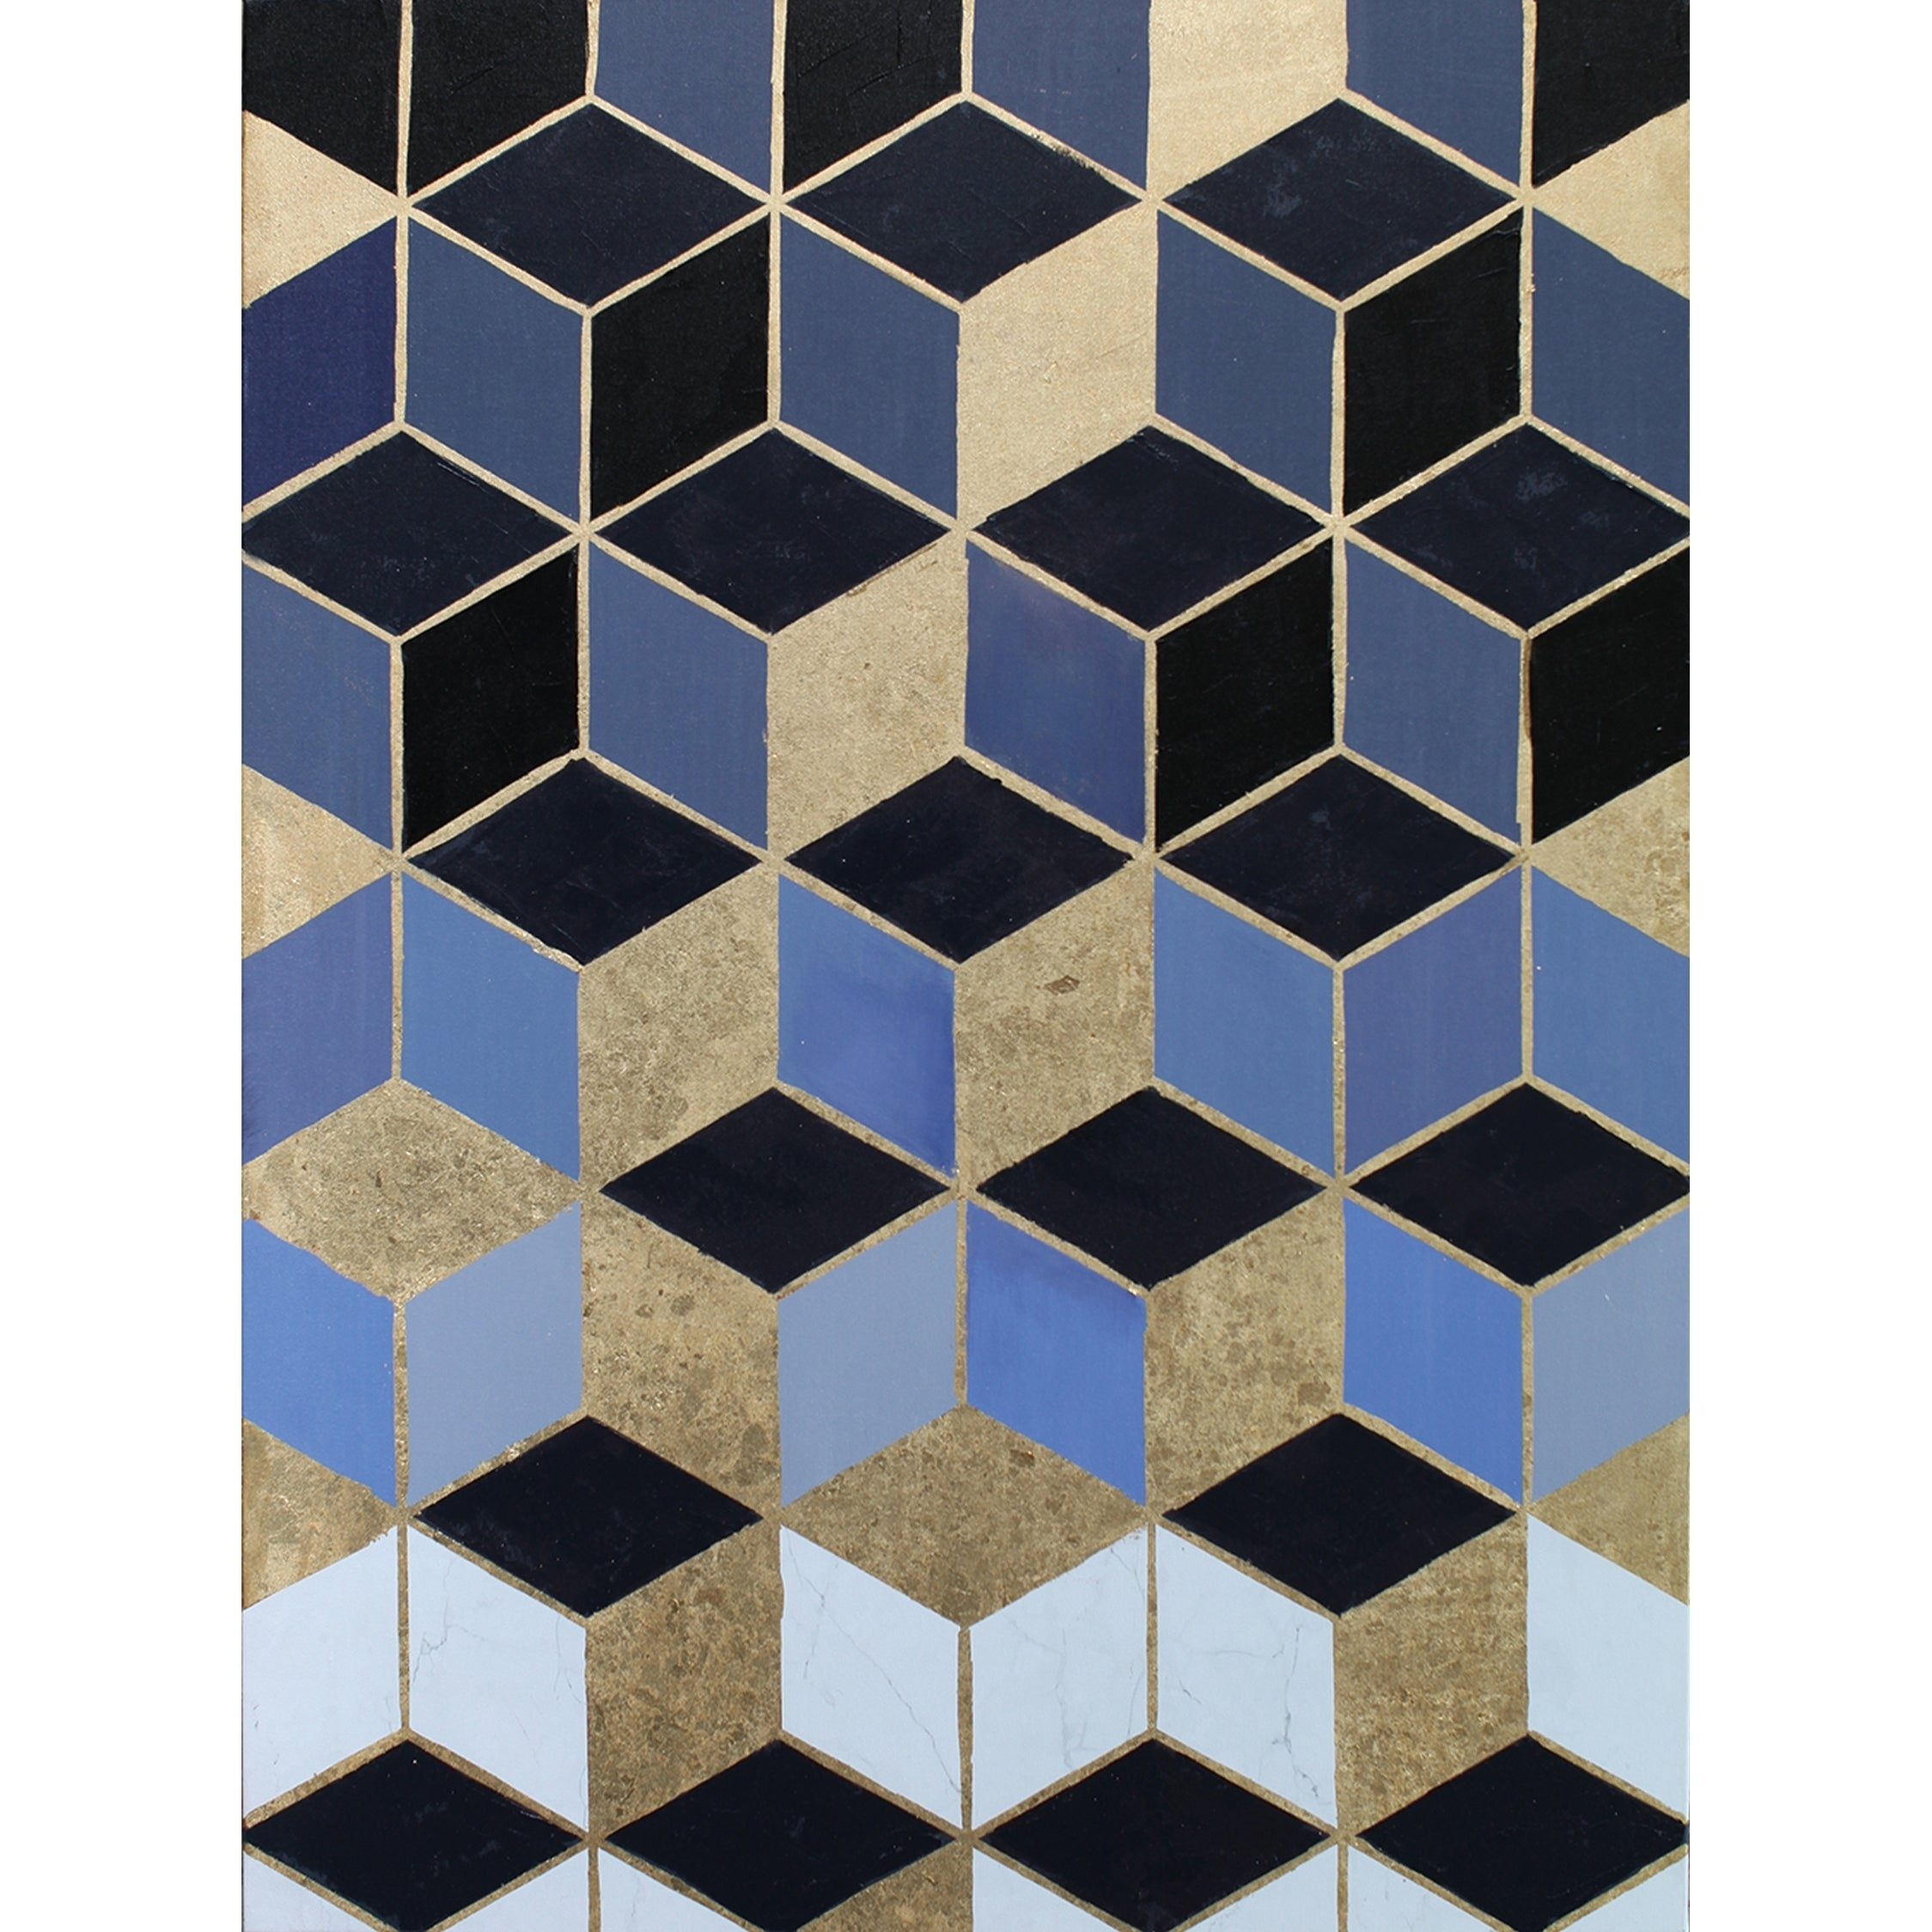 Contemporary Modern Geometric Canvas Wall Decor Intended For Contemporary Geometric Wall Decor (View 10 of 30)